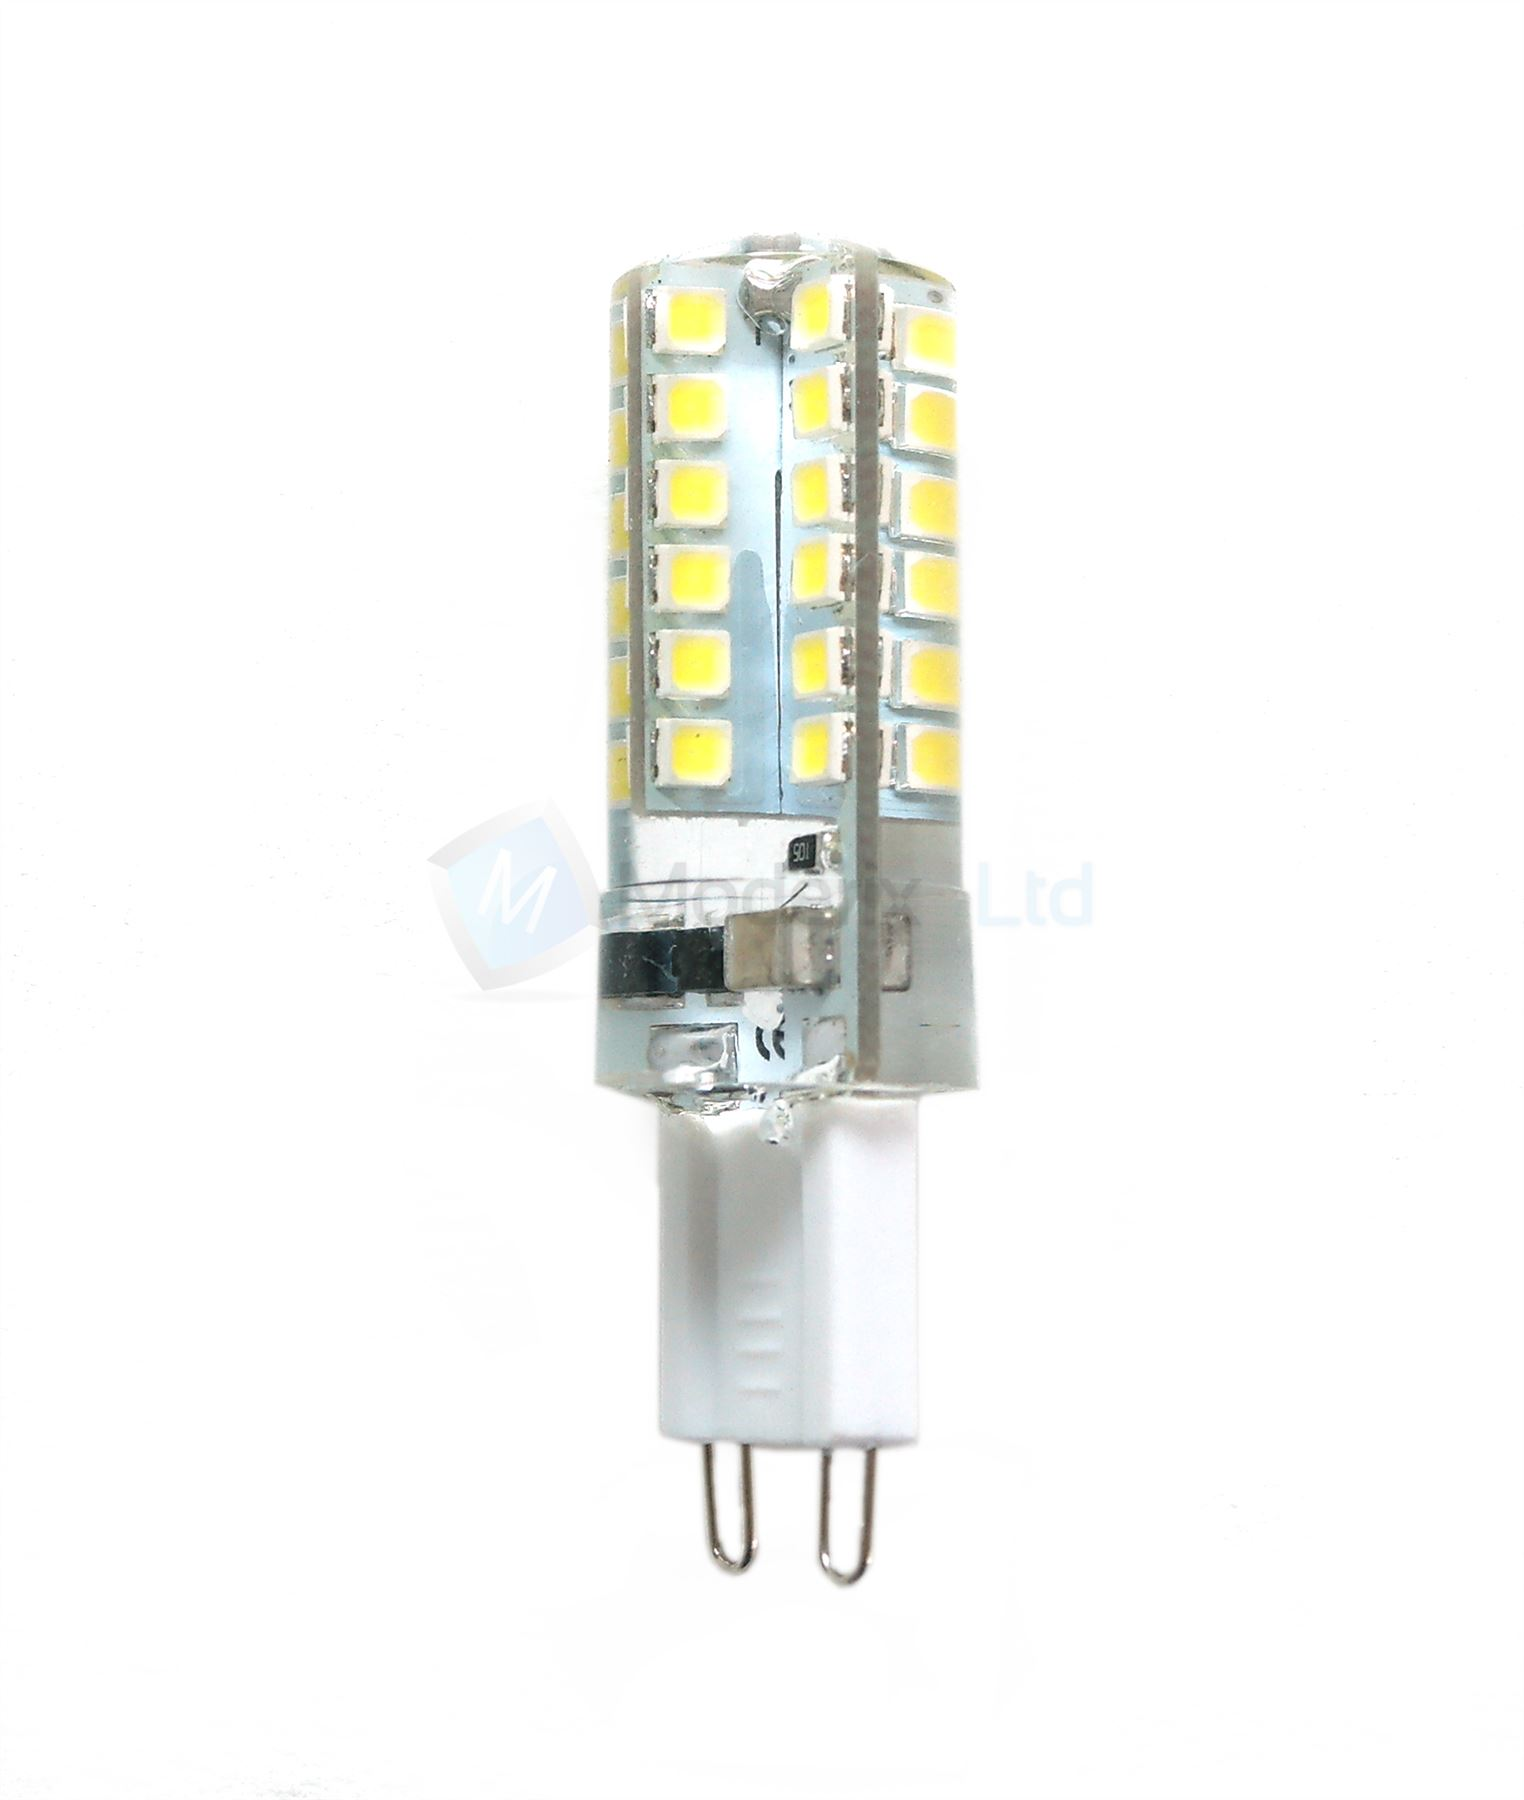 new g9 led corn bulb warm cool white 7w 9w 12w 2835 smd lights 220v lamp ebay. Black Bedroom Furniture Sets. Home Design Ideas